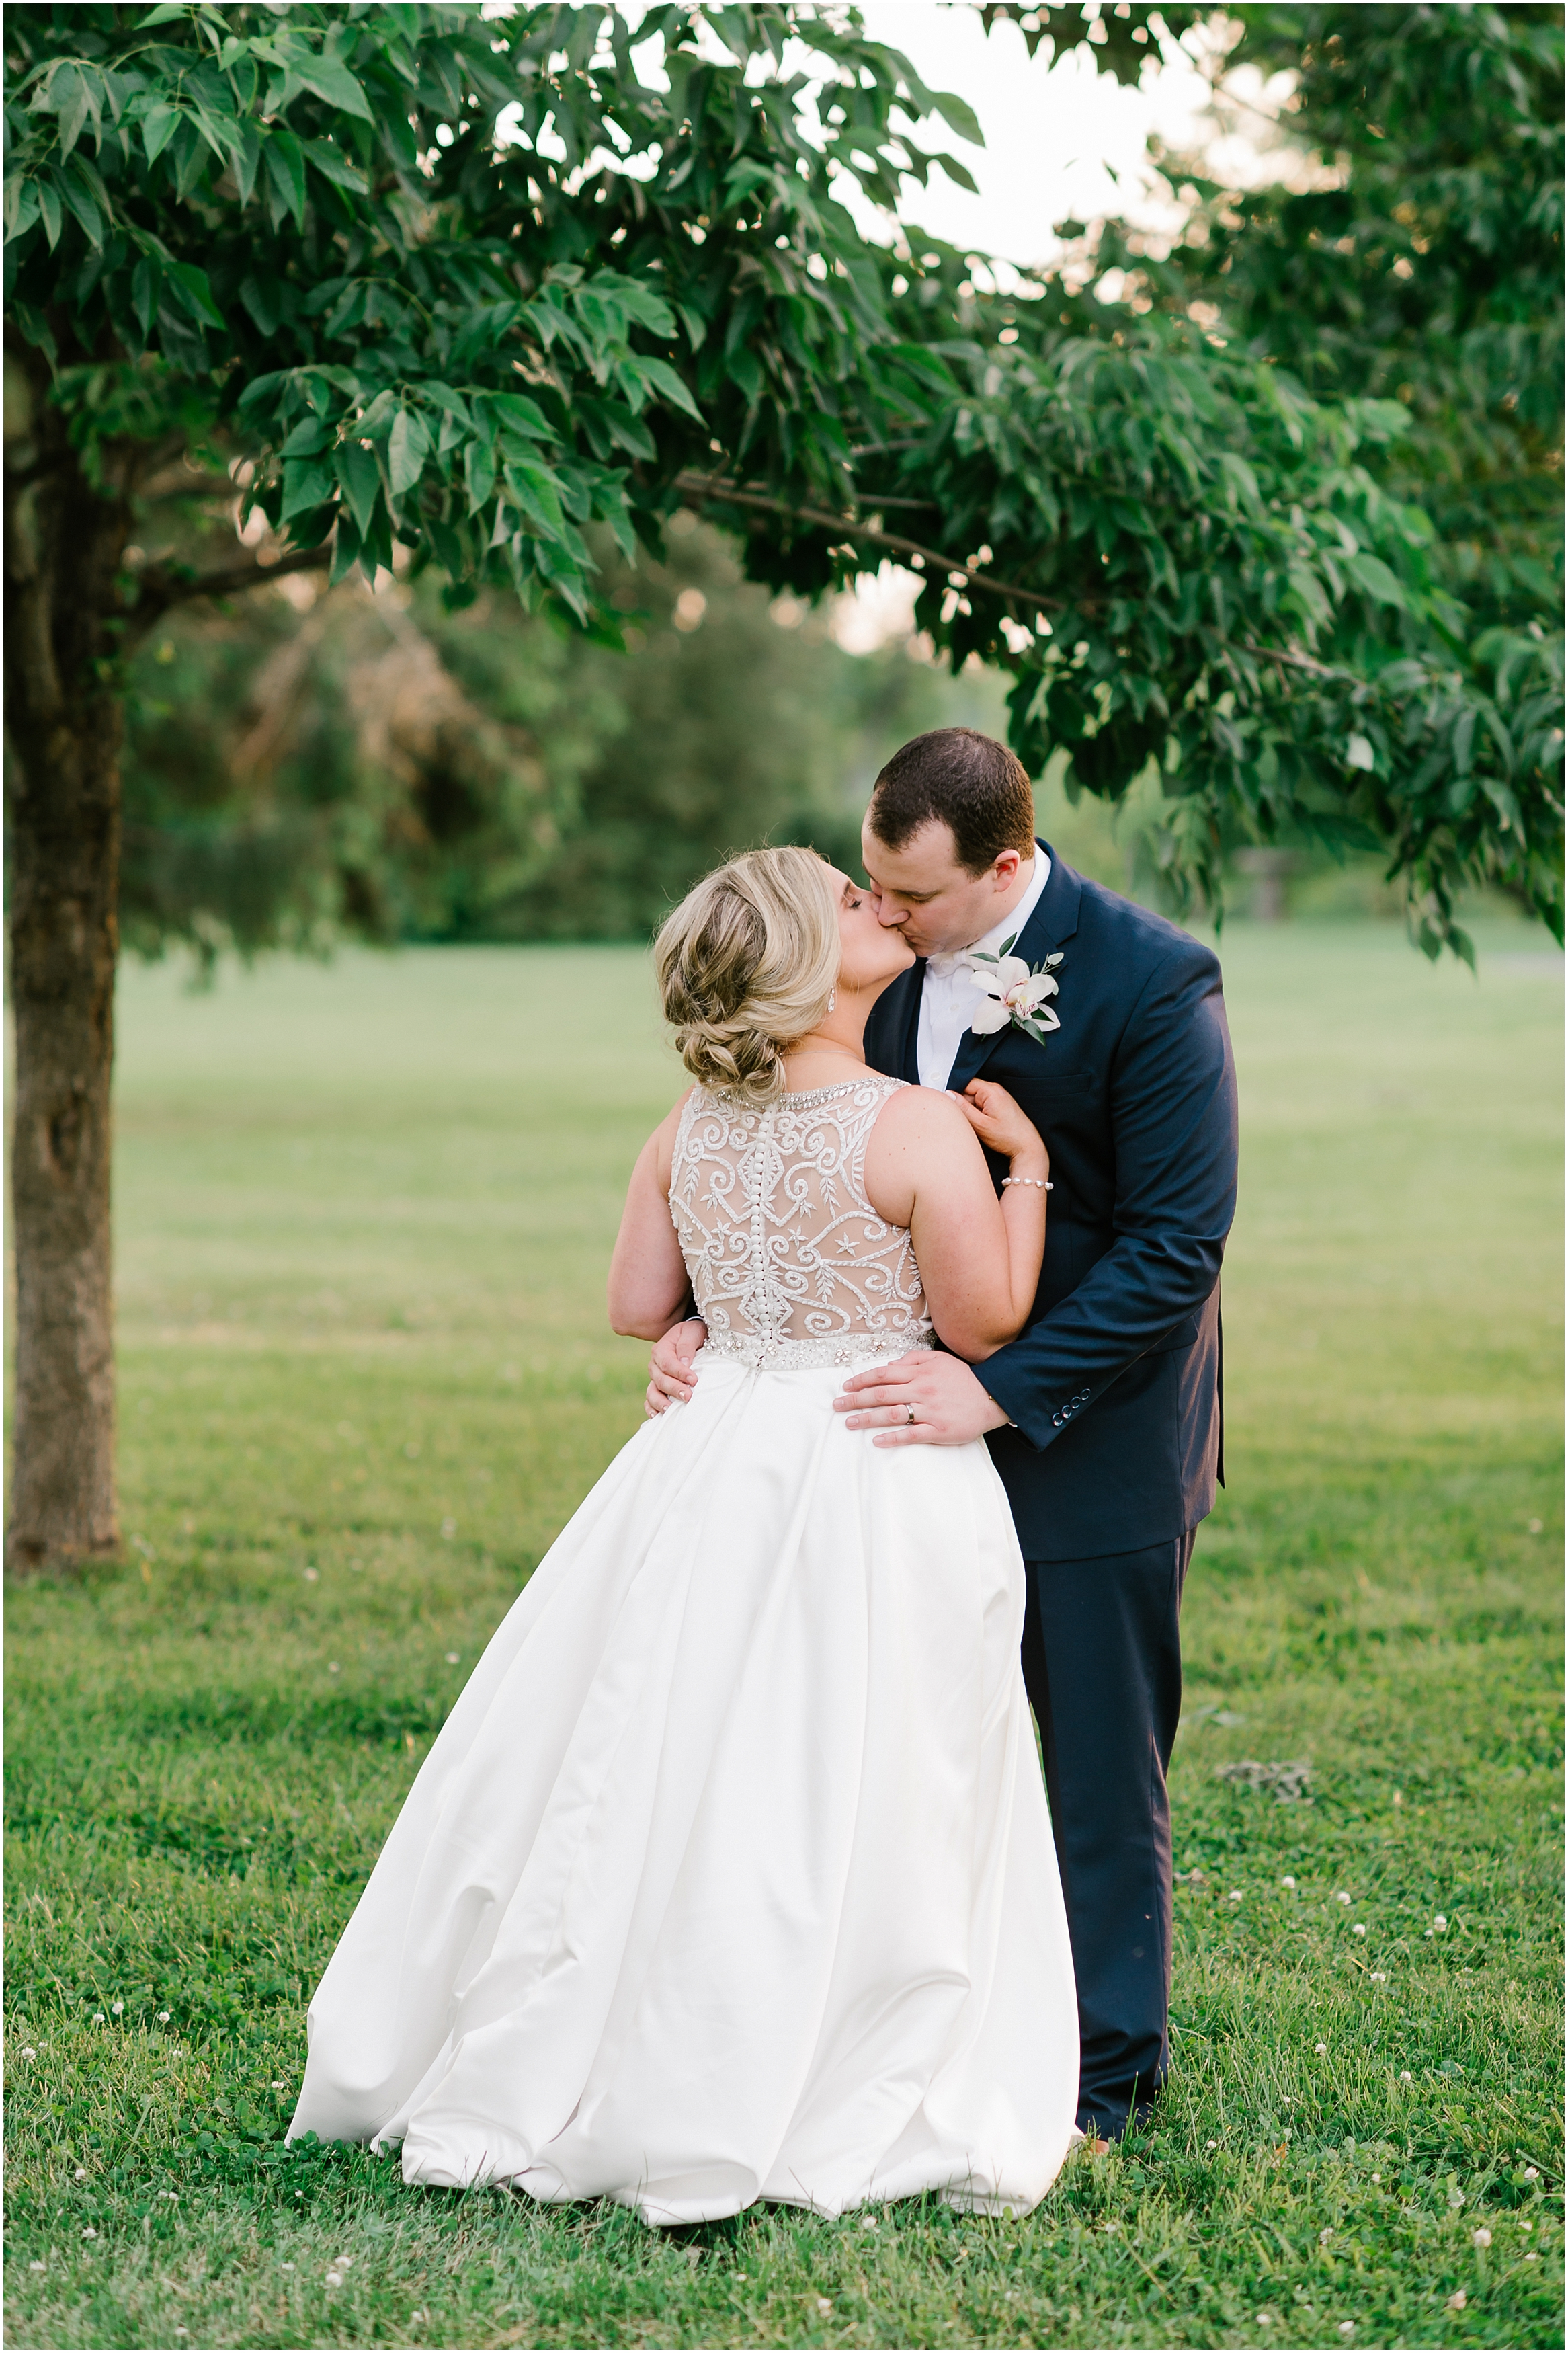 Rebecca Shehorn Photography Indianapolis Wedding Photographer Coxhall Garden Engagement_0262.jpg